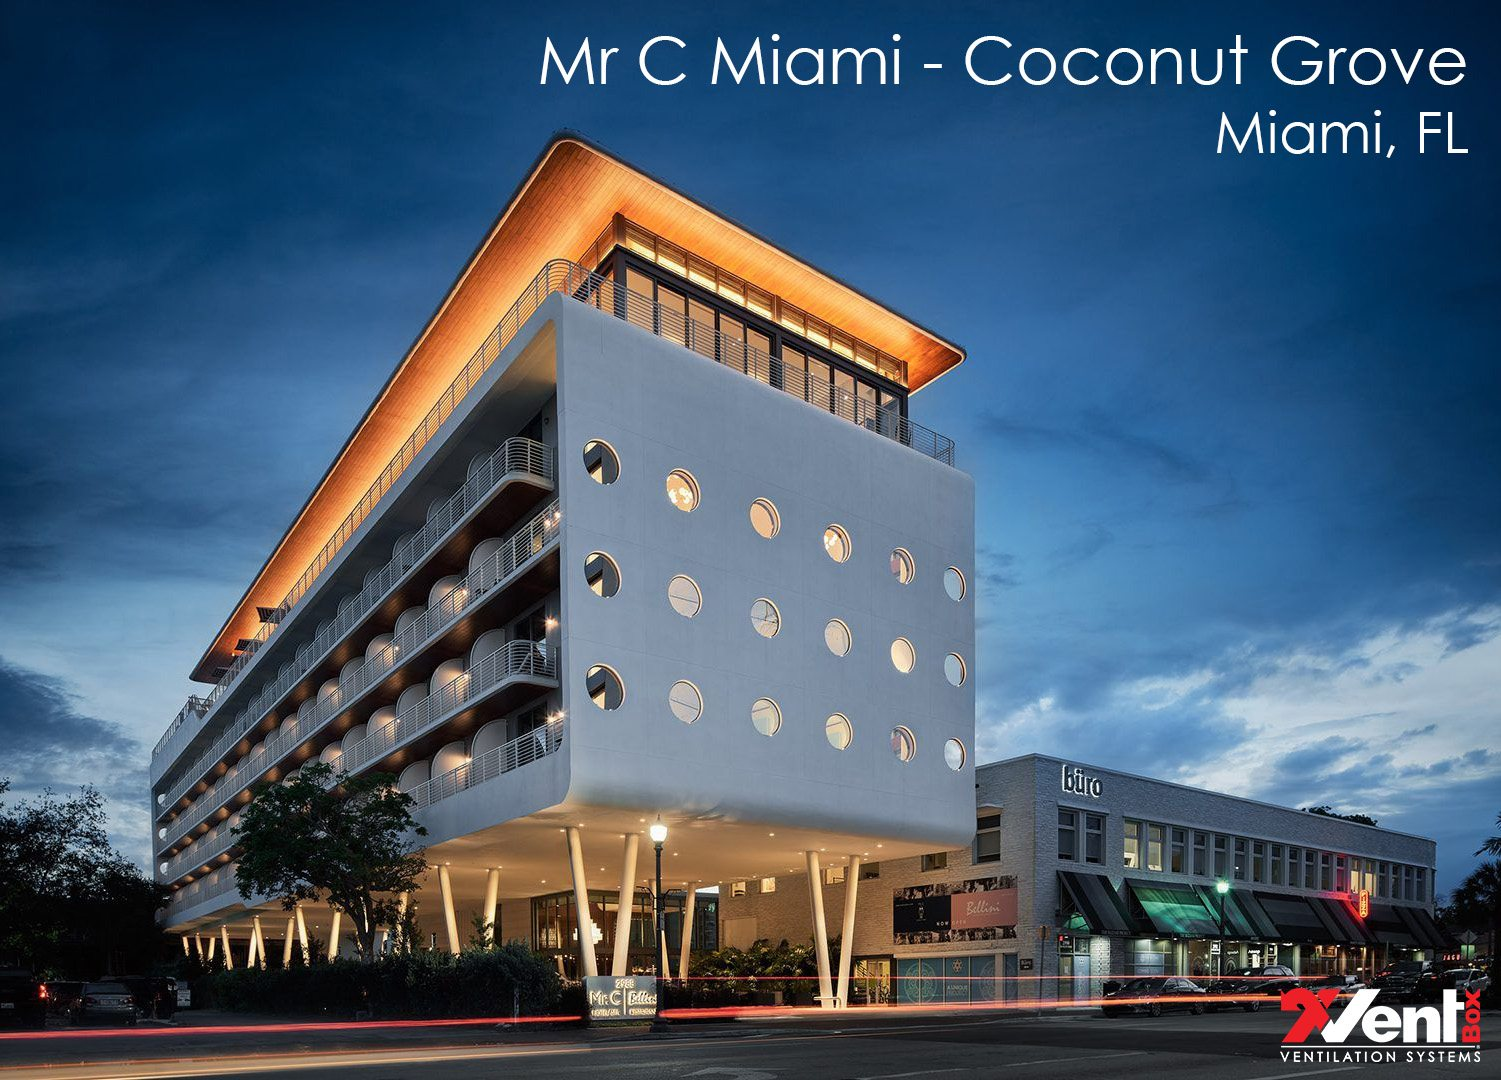 Mr C Miami - Coconut Grove